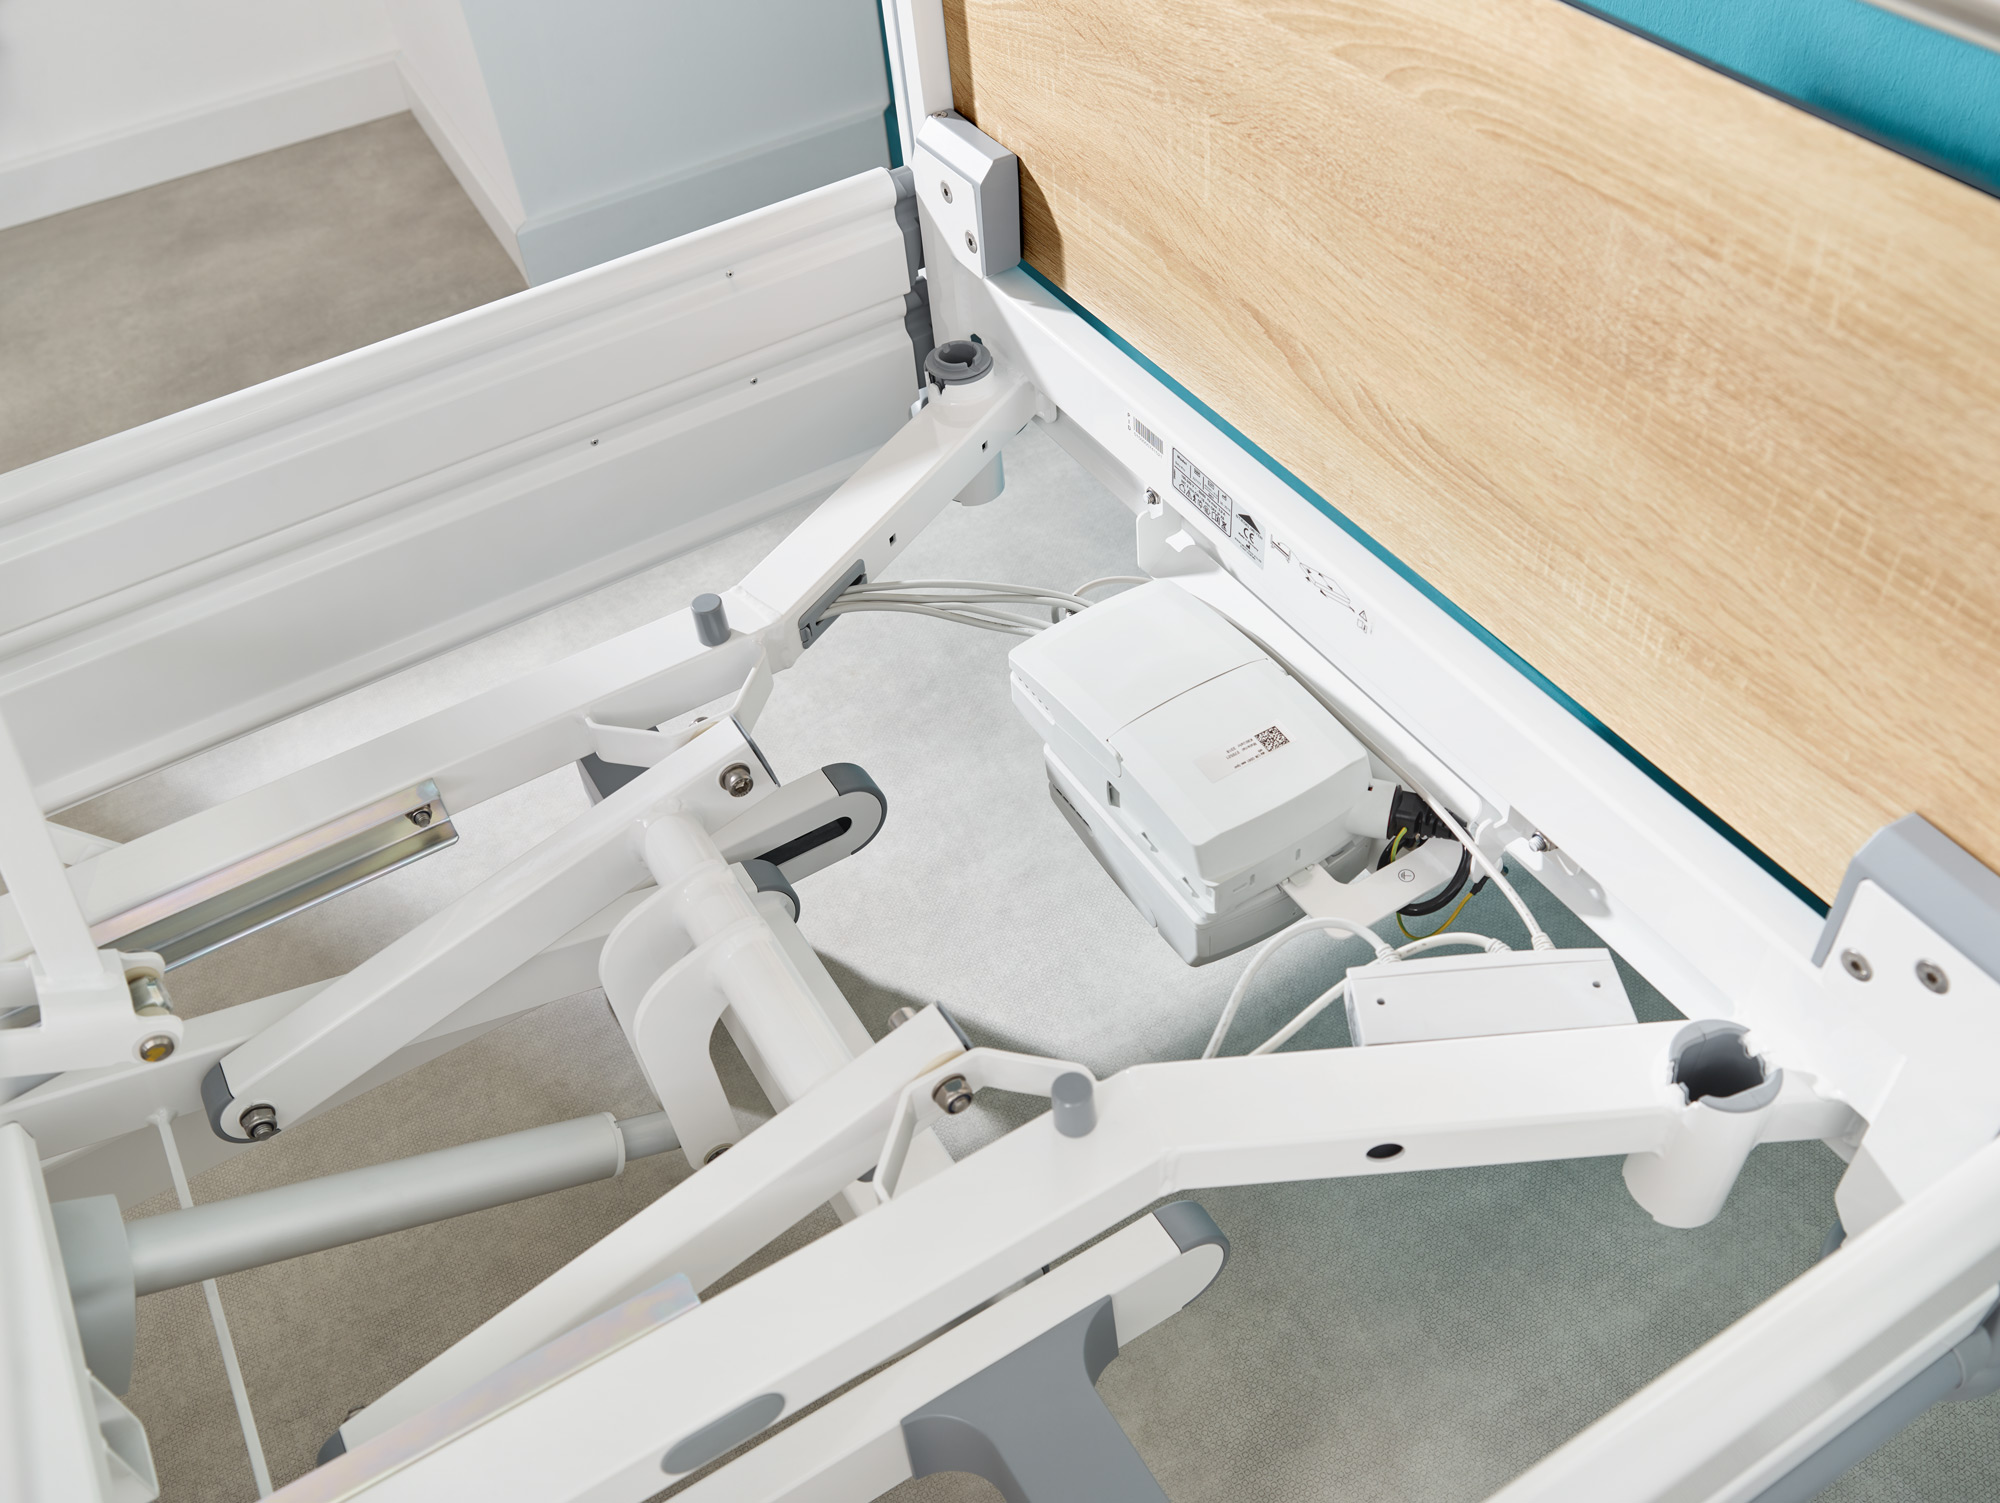 Concealed cable routing on the Seta pro hospital bed